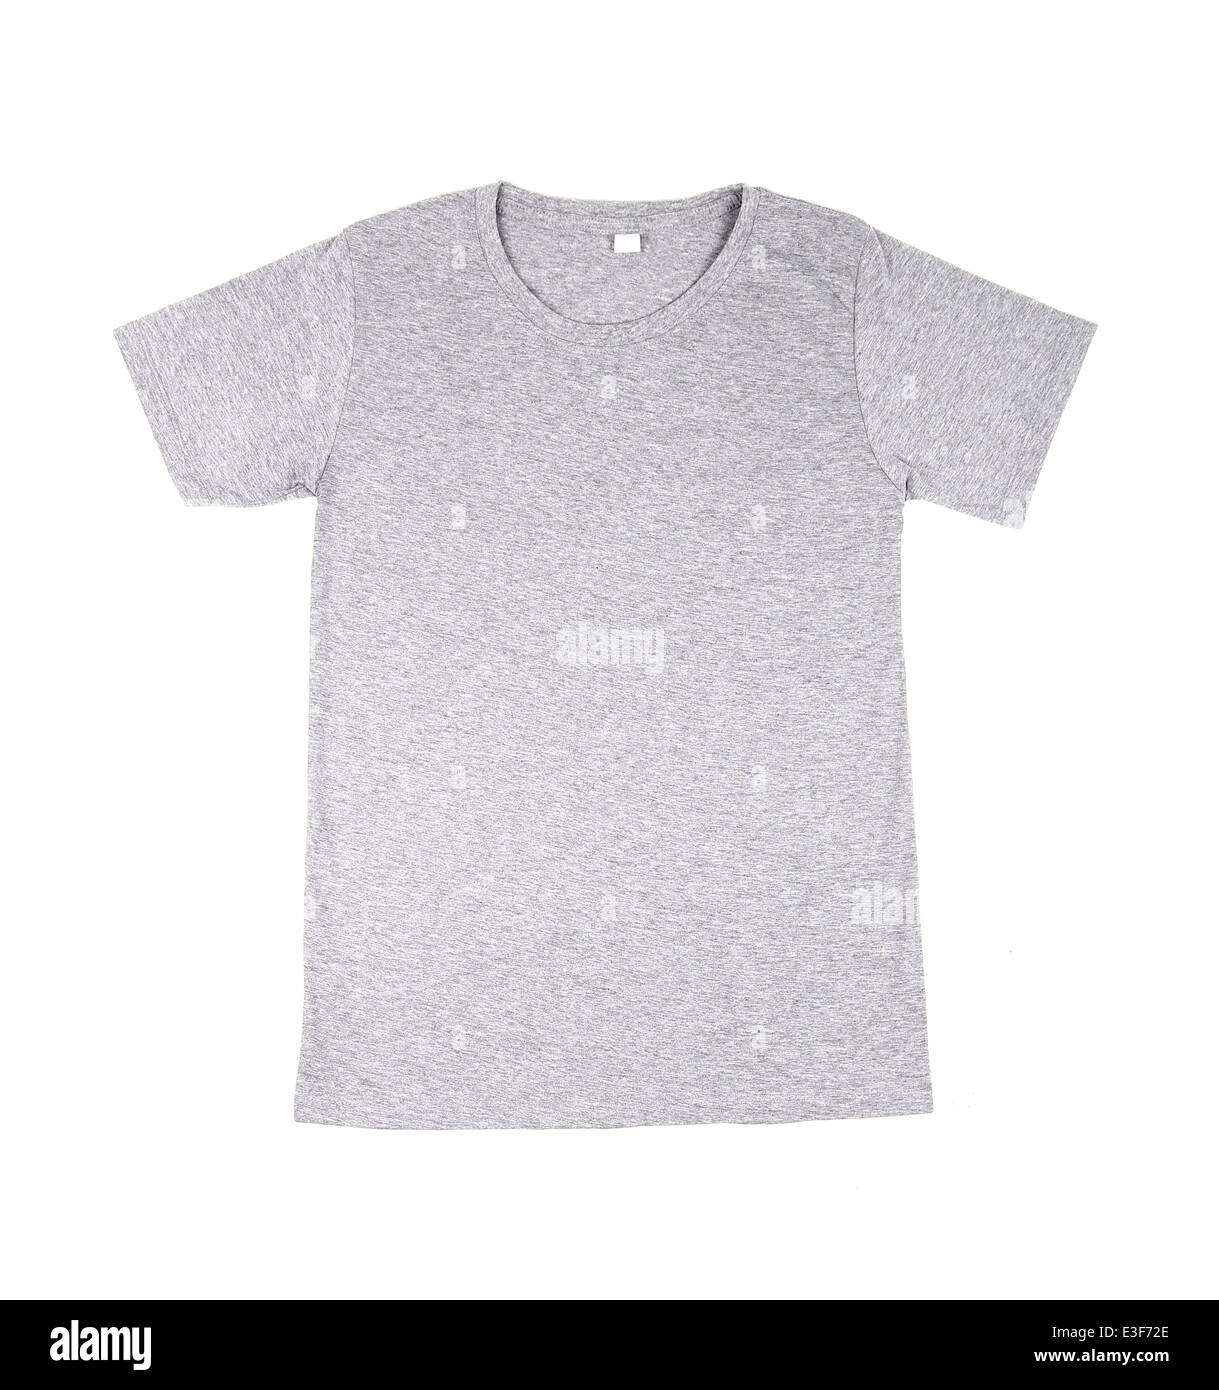 Grey T Shirt Stockfotos & Grey T Shirt Bilder - Alamy